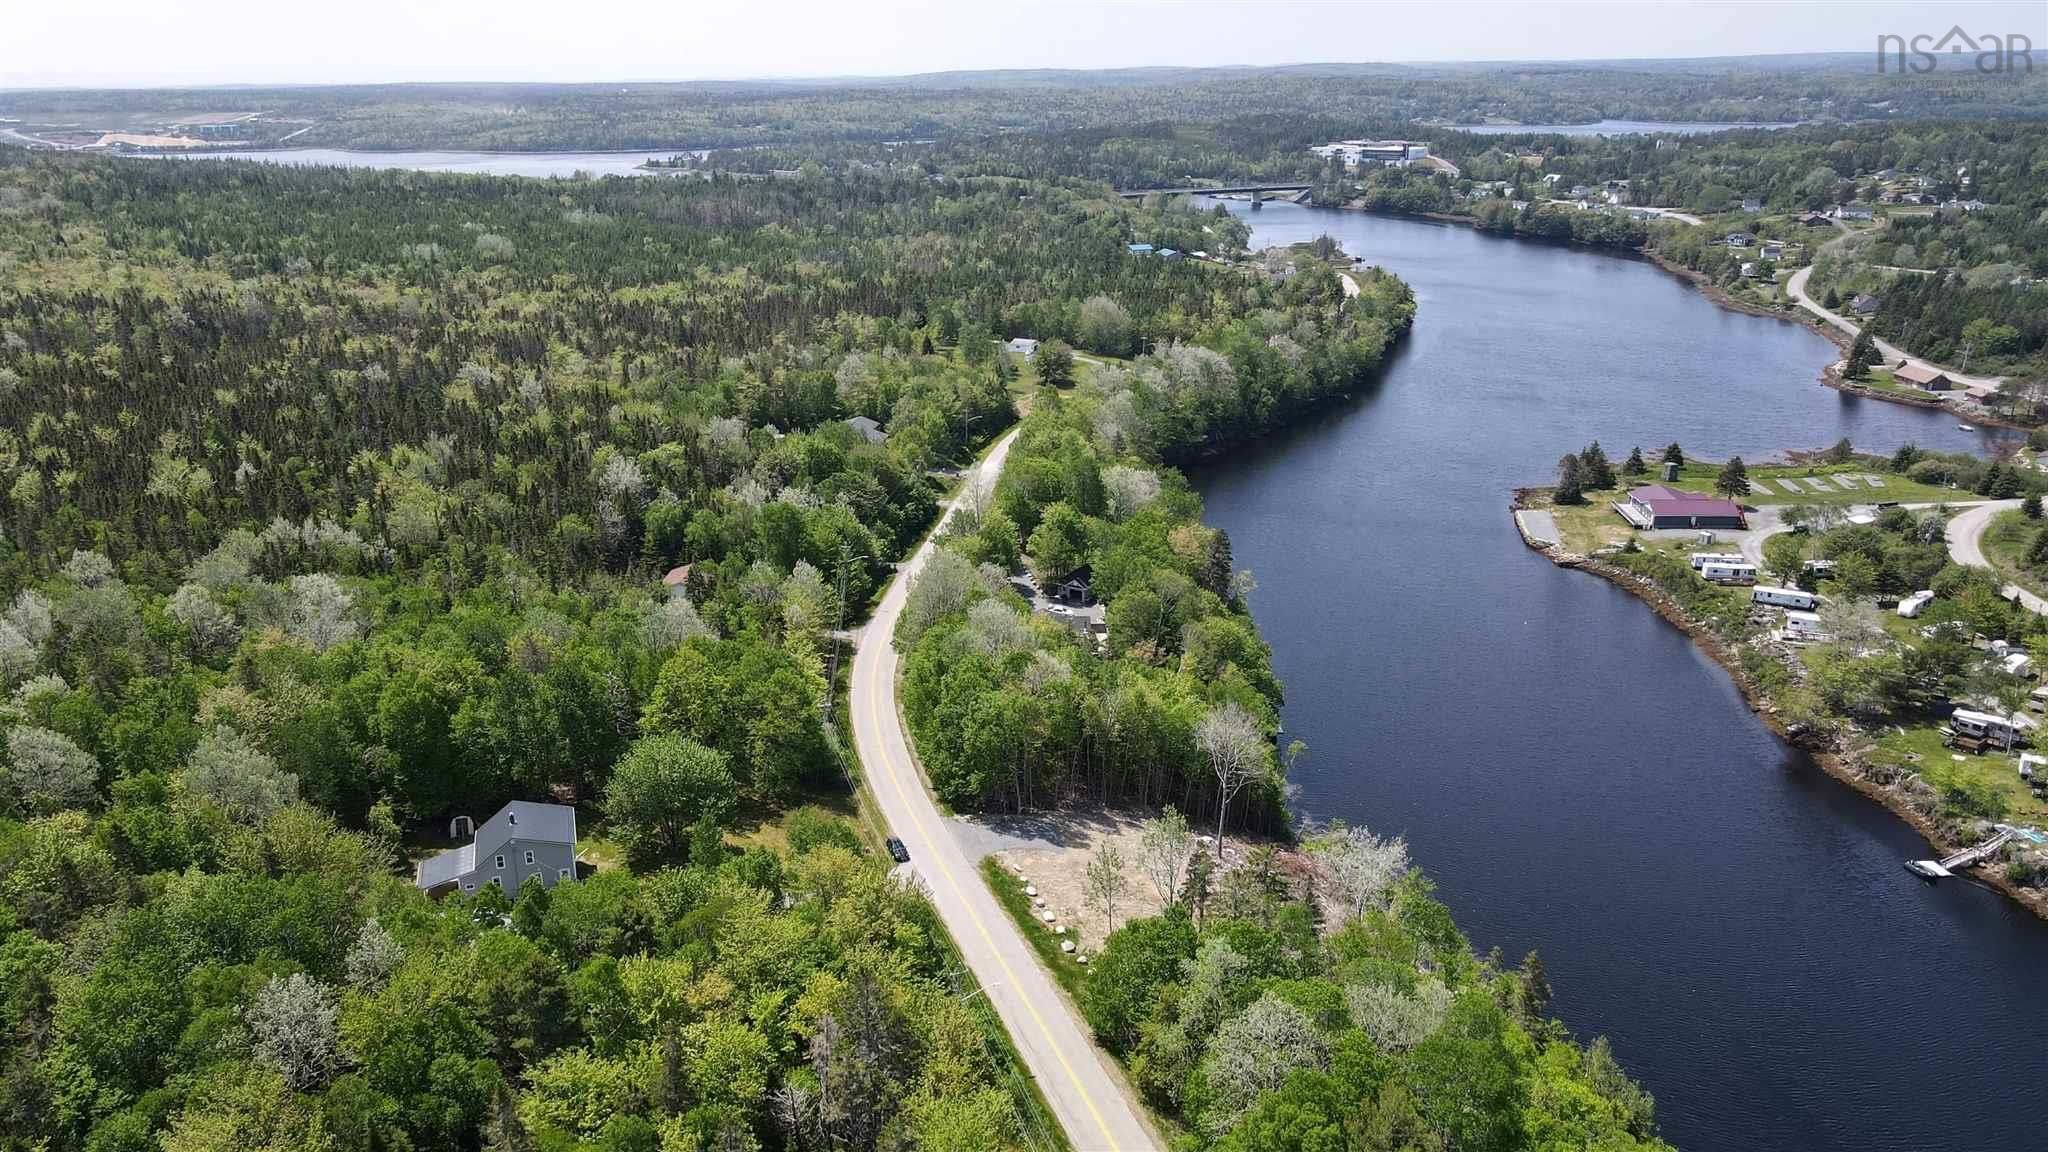 Photo 29: Photos: 284 East River Road in Sheet Harbour: 35-Halifax County East Residential for sale (Halifax-Dartmouth)  : MLS®# 202120104